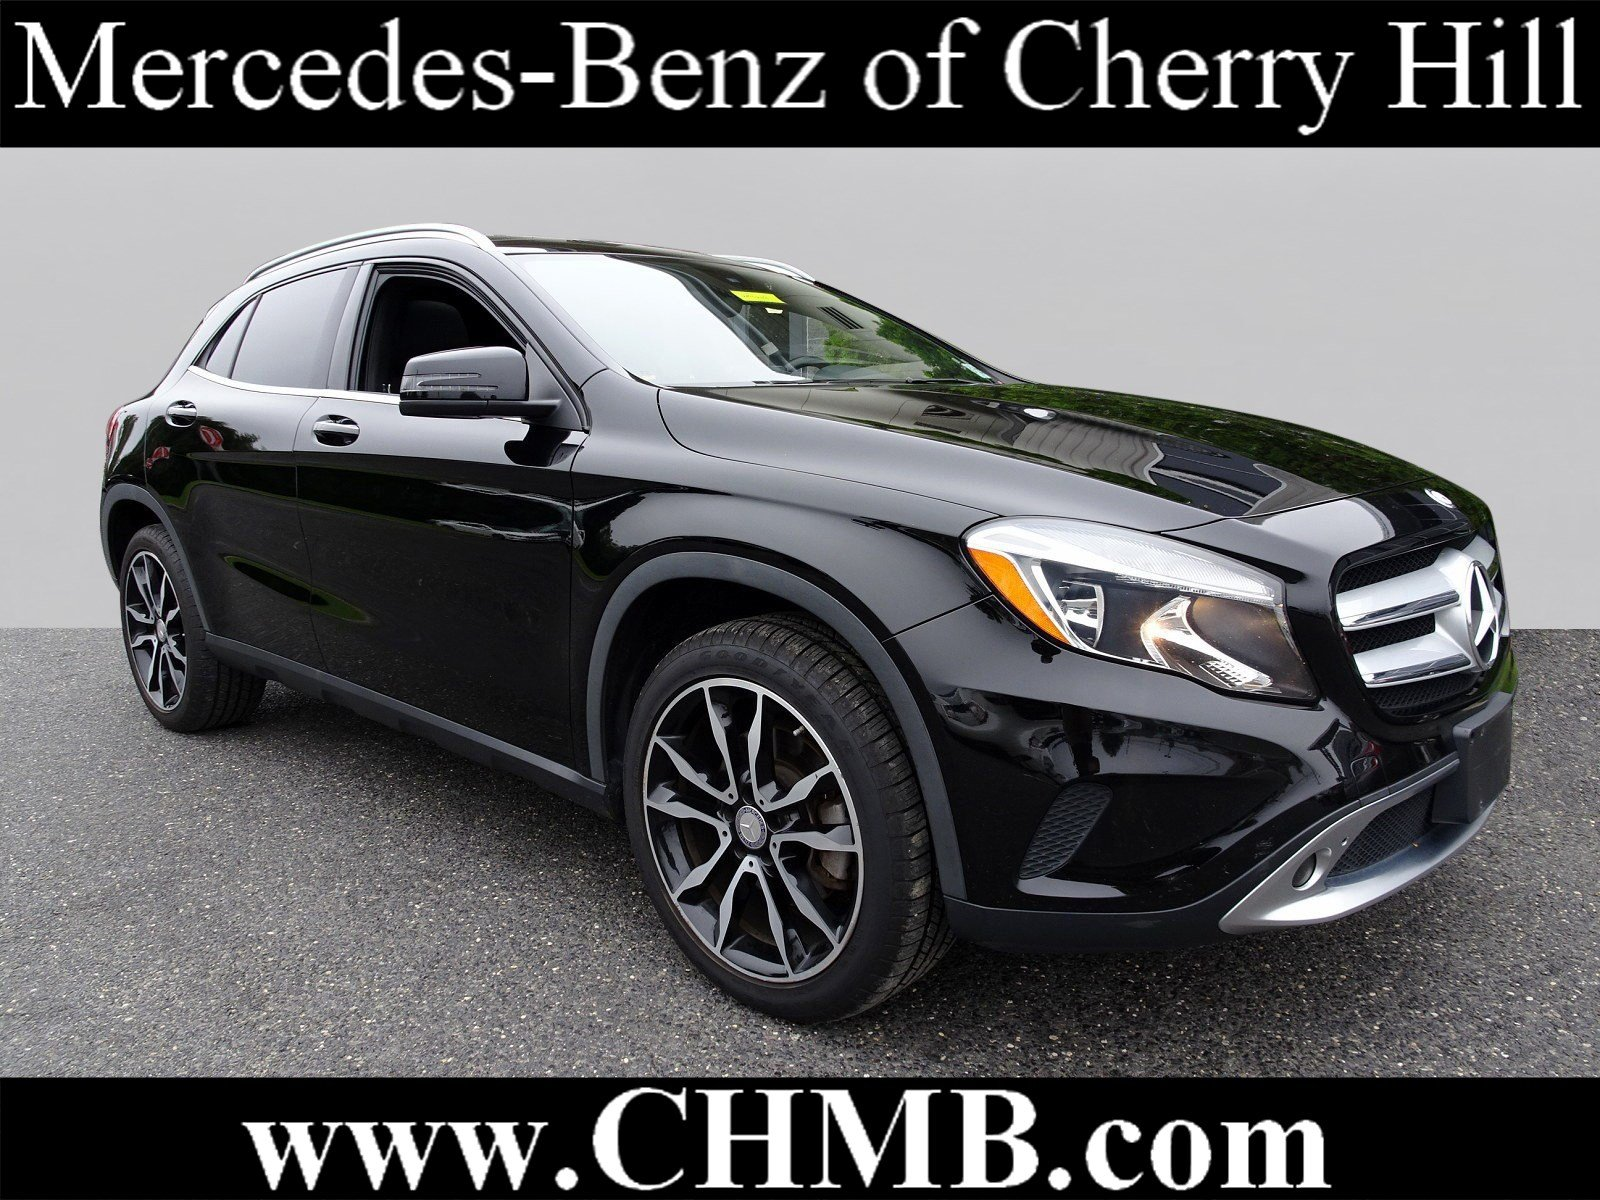 Certified Pre Owned 2016 Mercedes Benz GLA GLA 250 SUV in Cherry